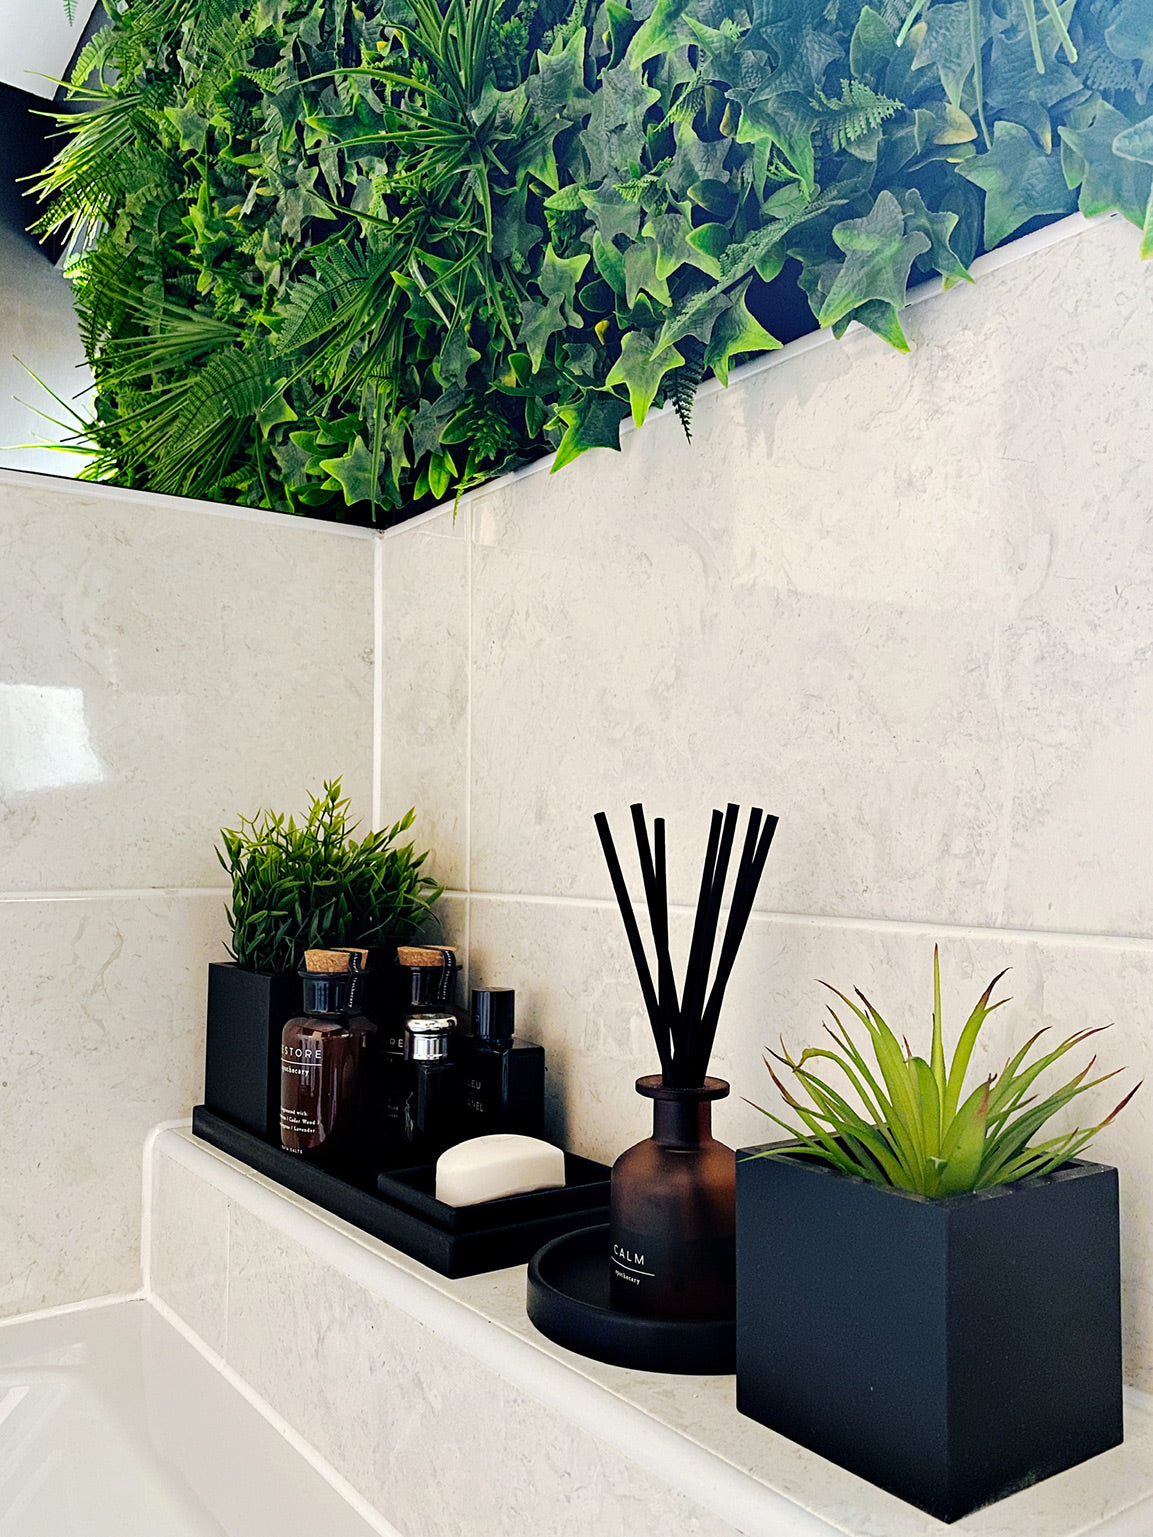 Black bathroom accessories styled with a living wall behind